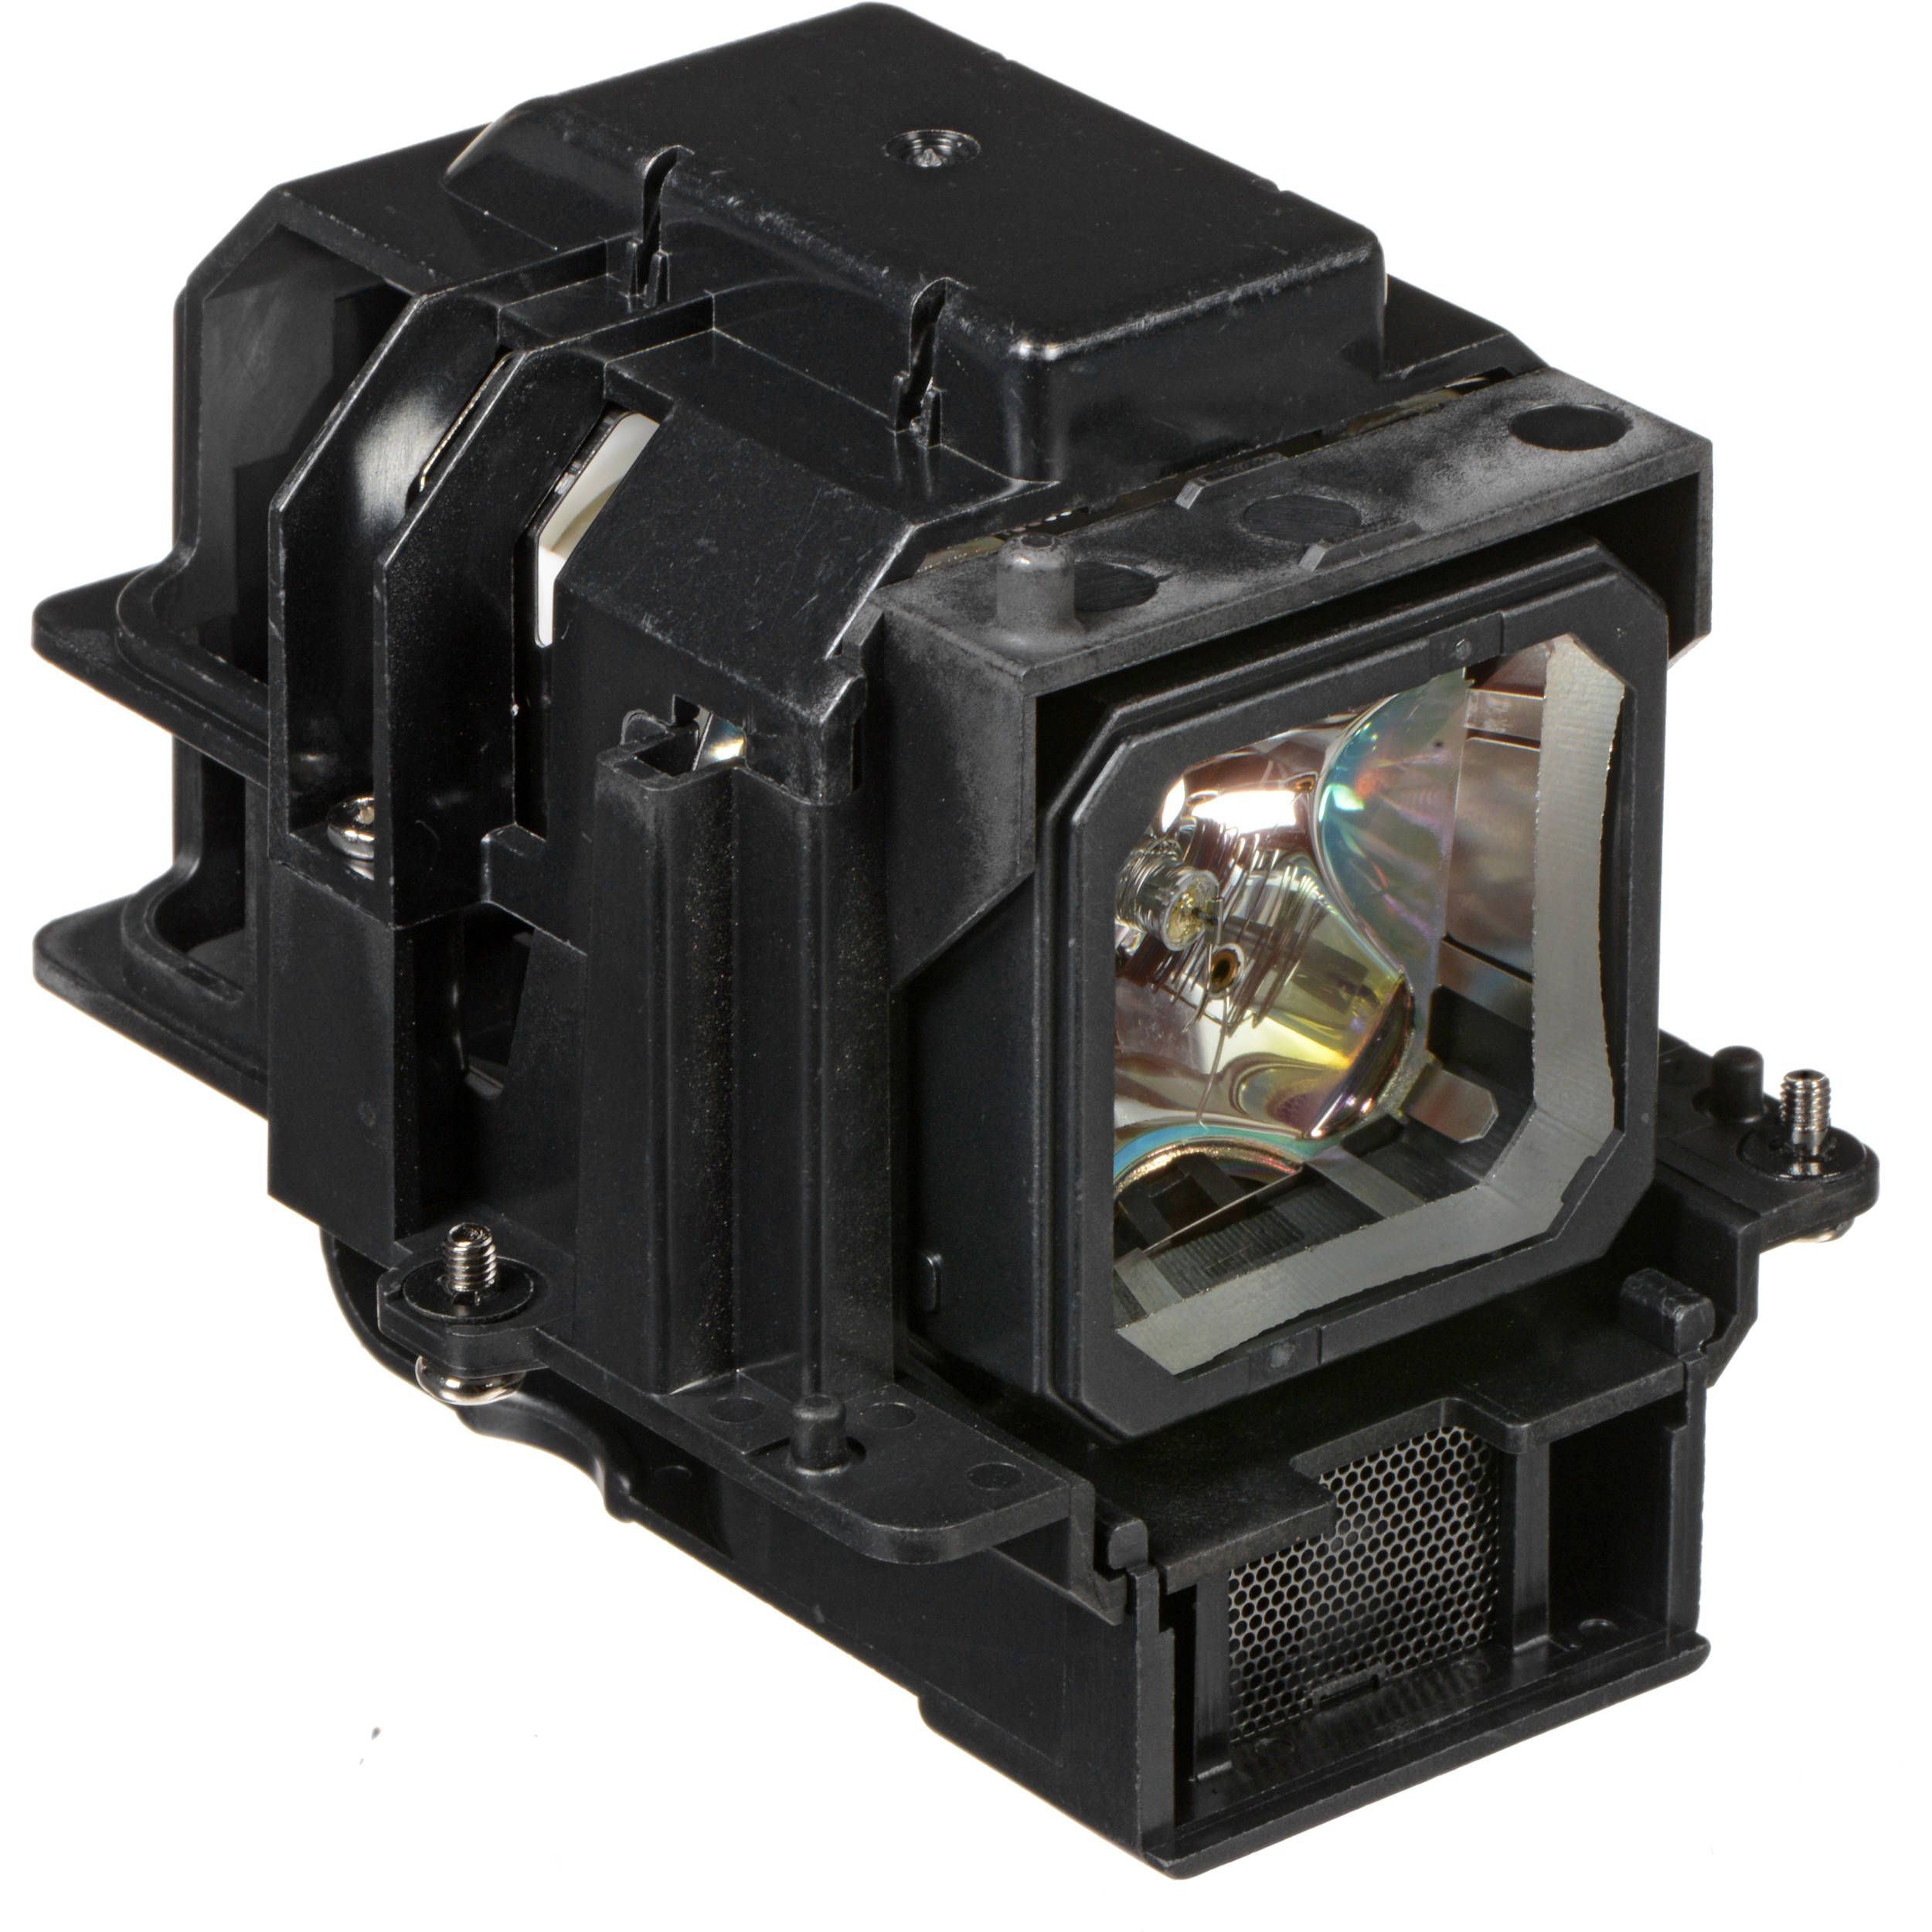 NEC VT75LPE Replacement Lamp for the NEC LT280, LT380 and VT470 Multimedia Projectors